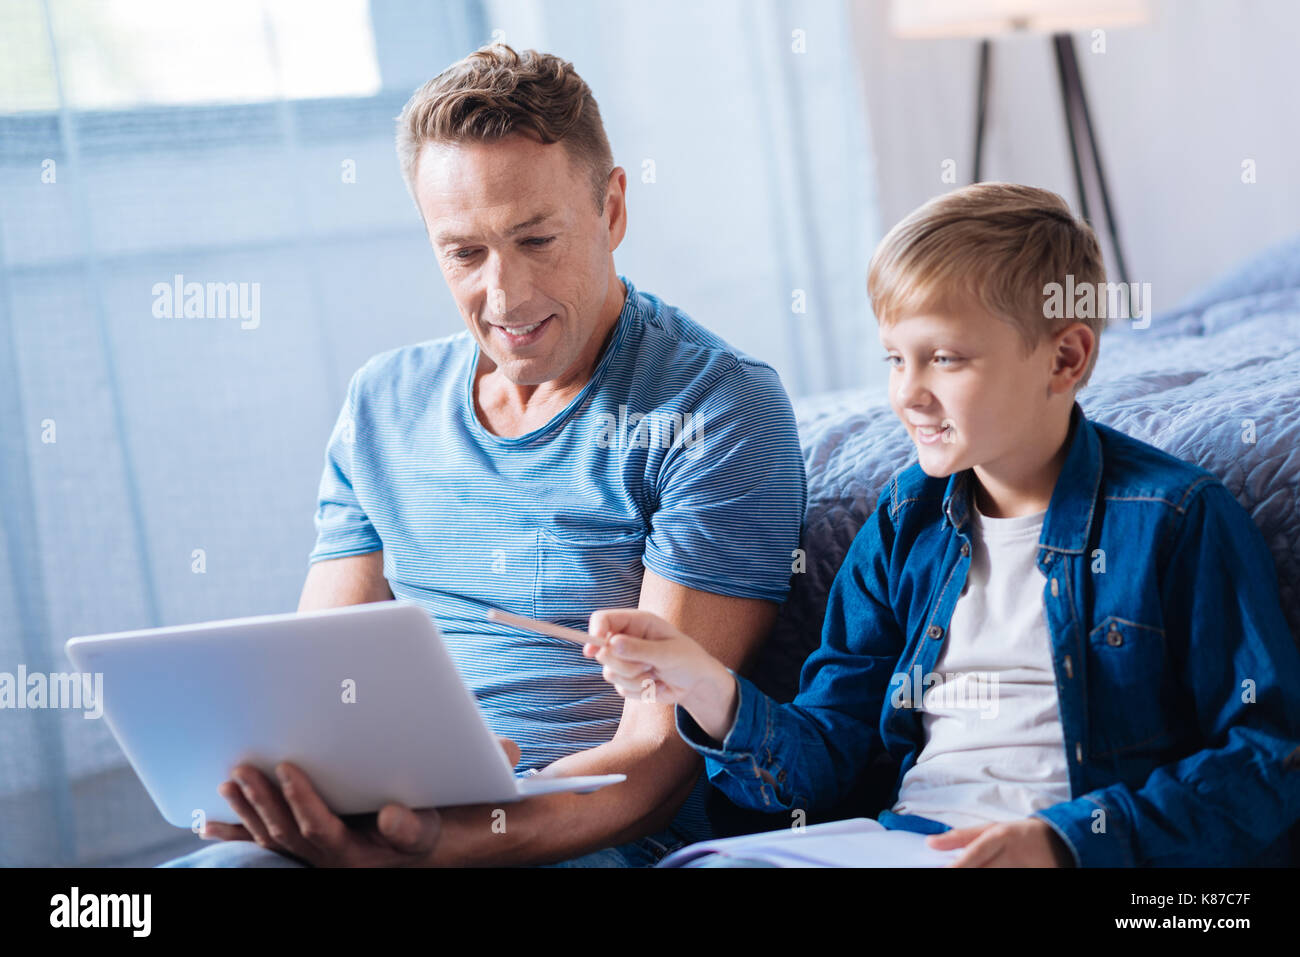 Cute pre-teen boy discussing presentation with his father - Stock Image